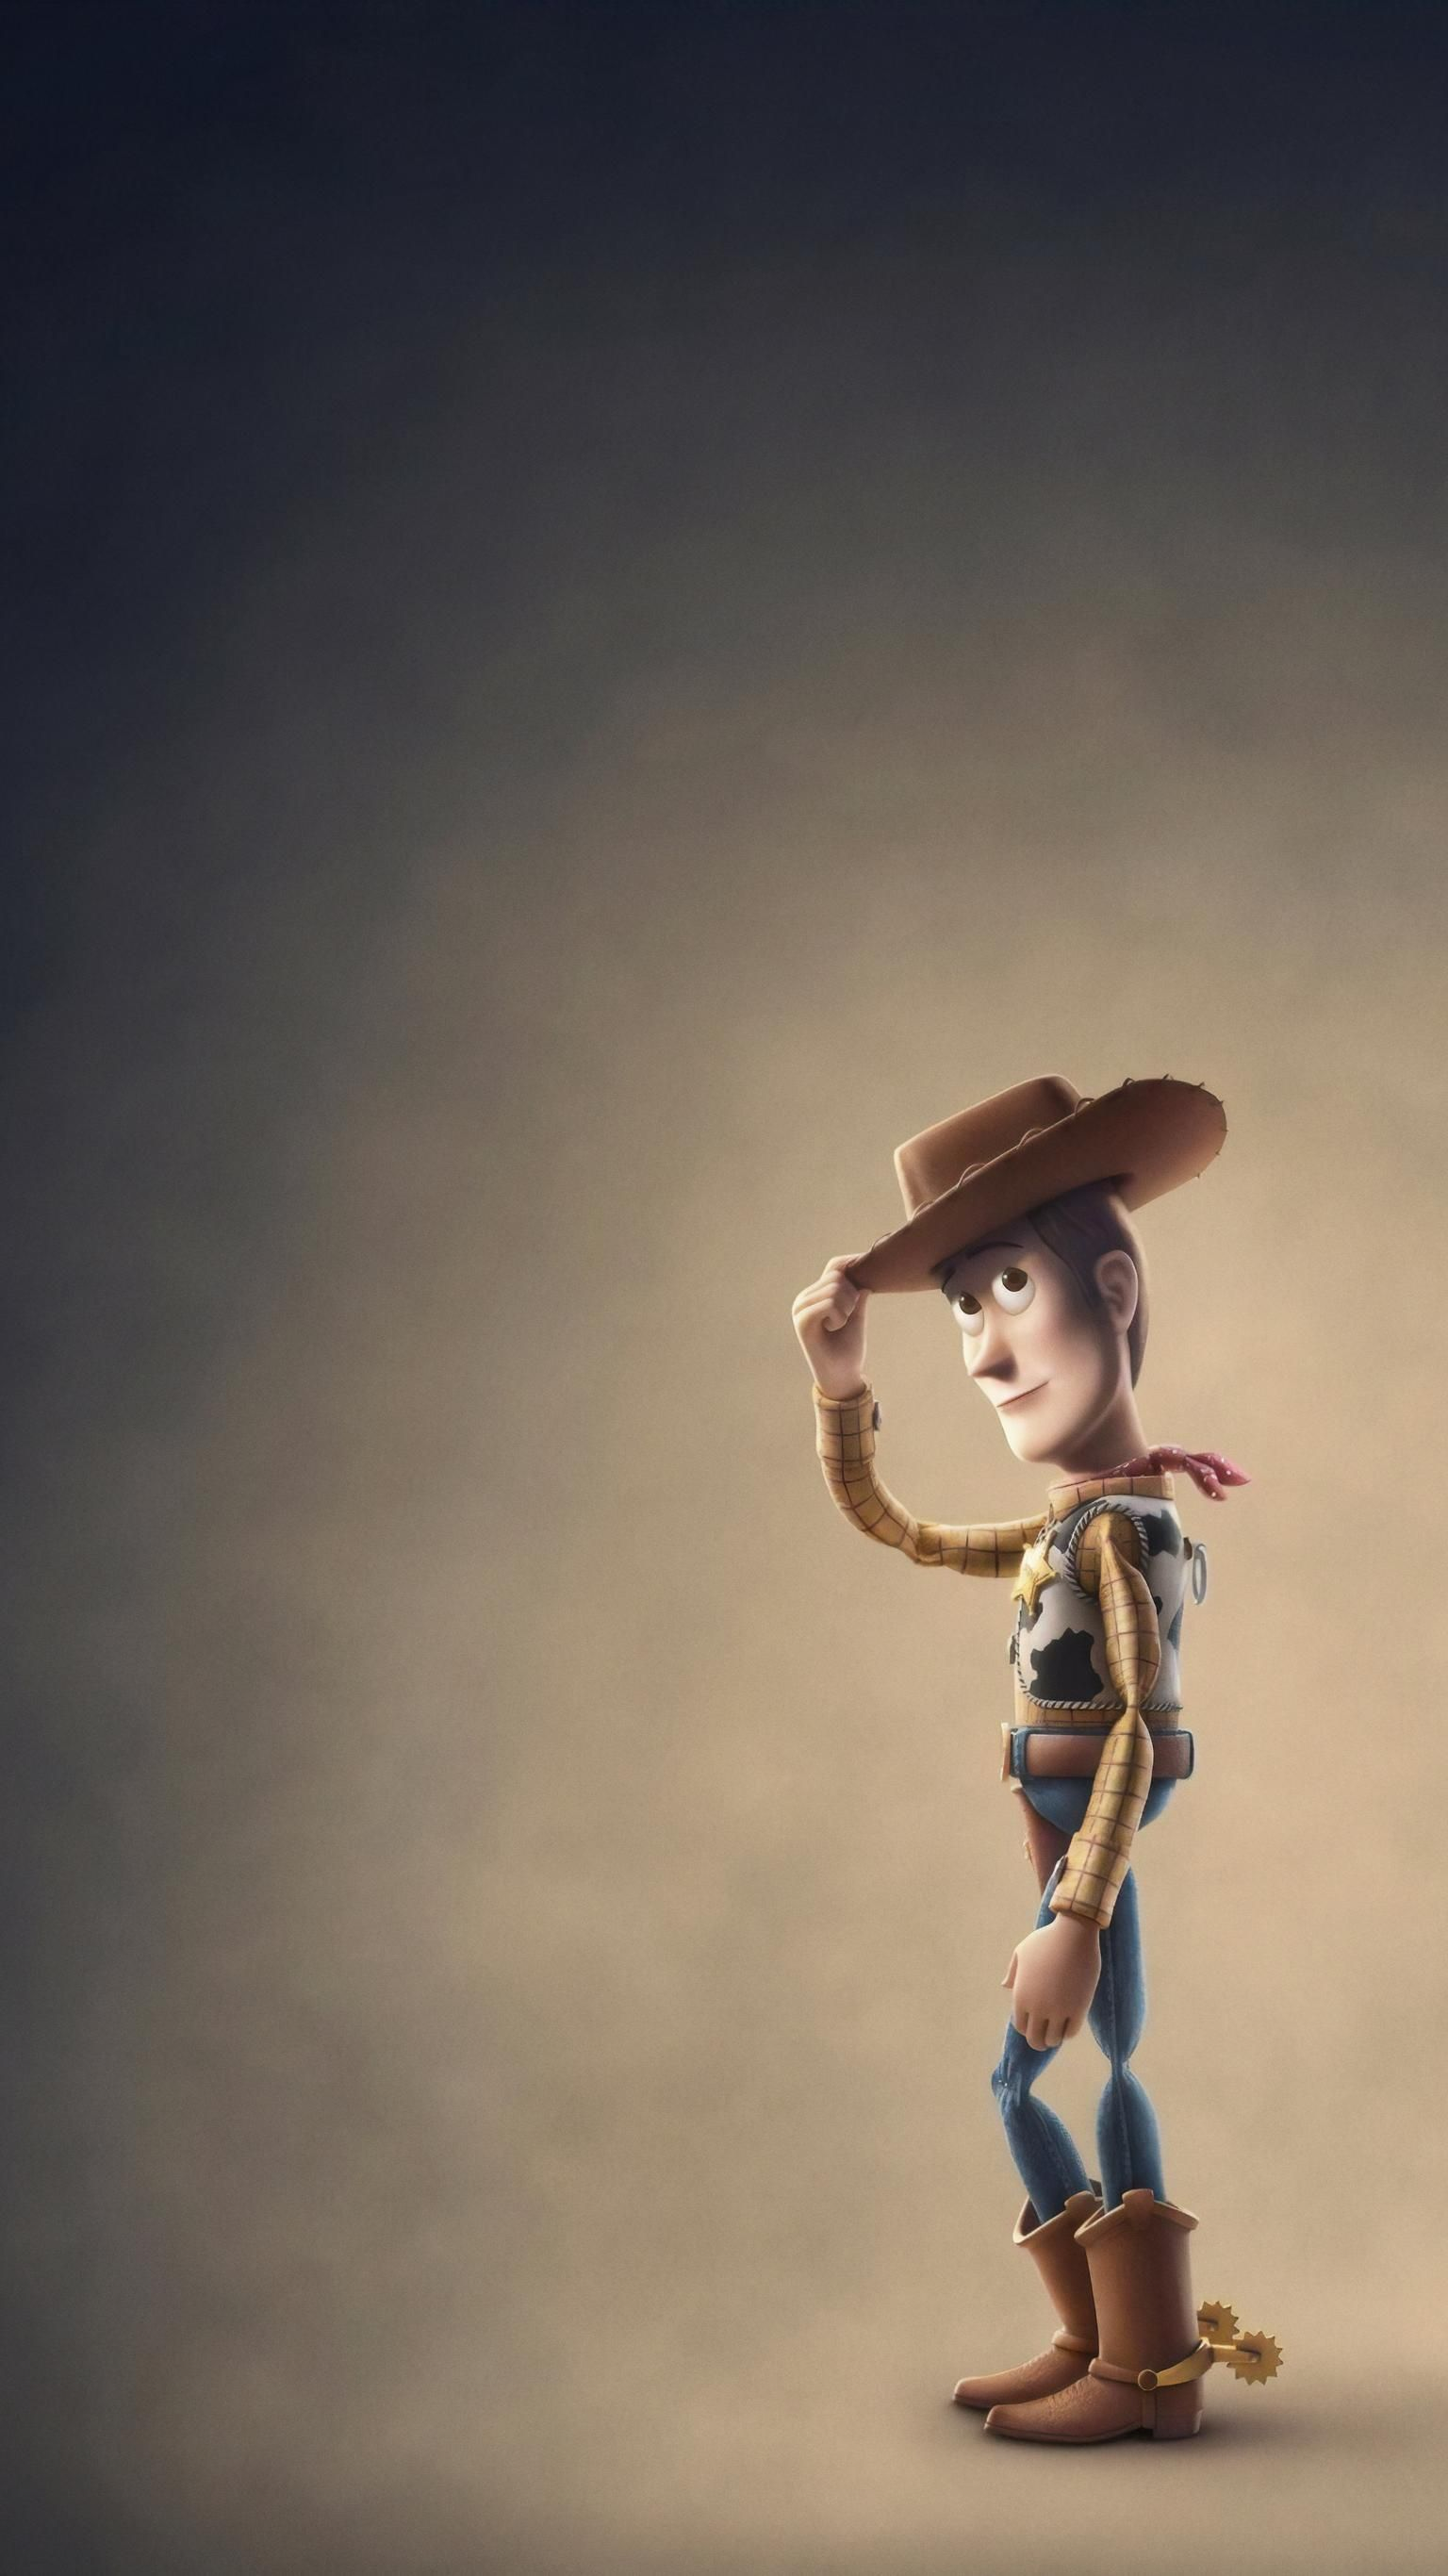 Toy Story 4 2019 Phone Wallpaper iPhone backgrounds in 2019 1536x2732